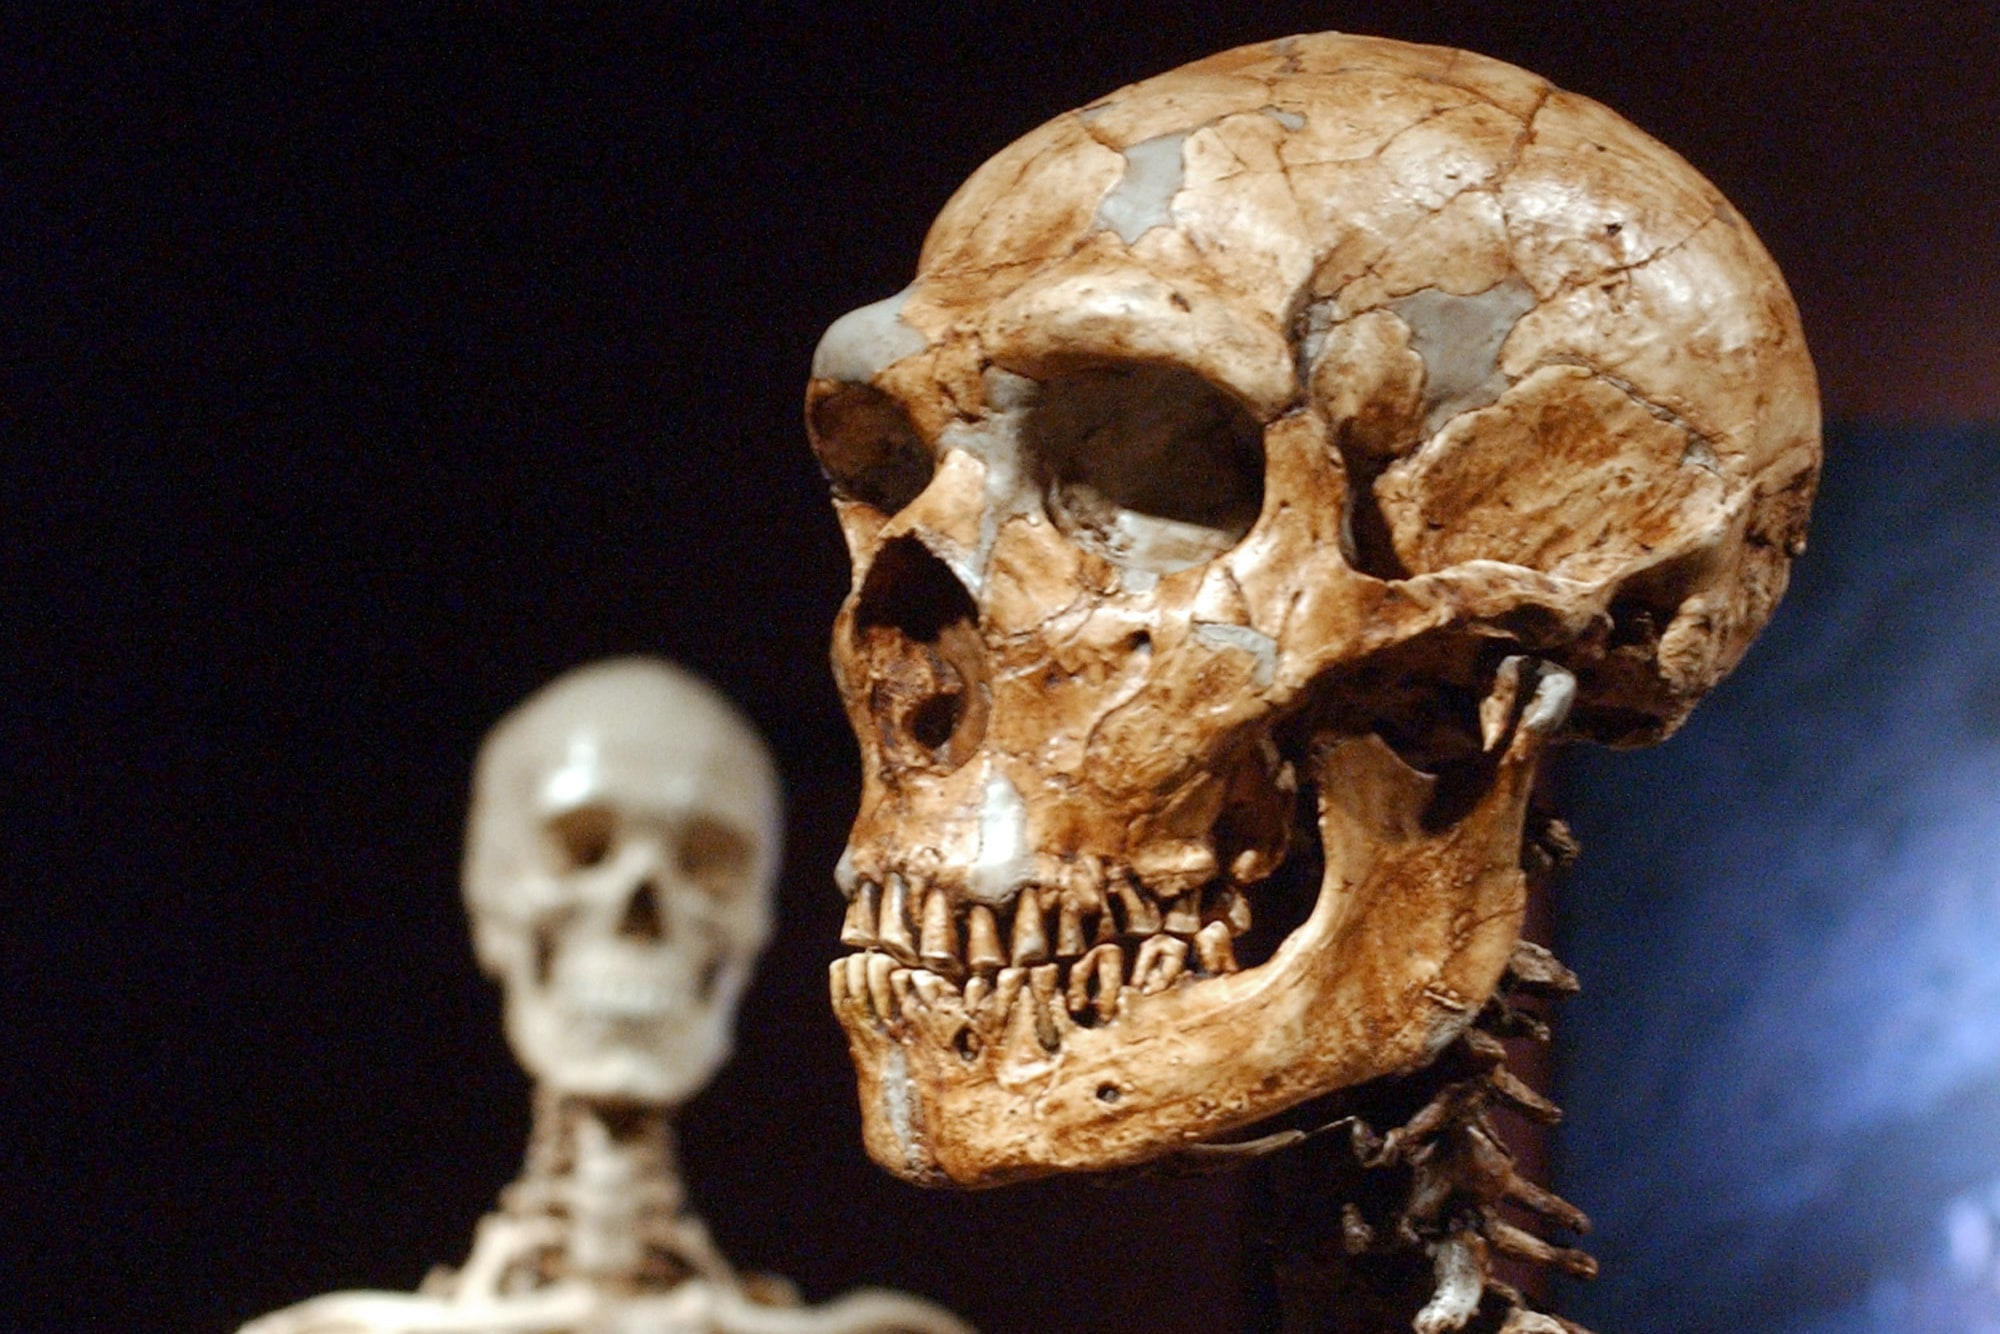 Just 7 percent of our DNA is unique to modern humans, study shows